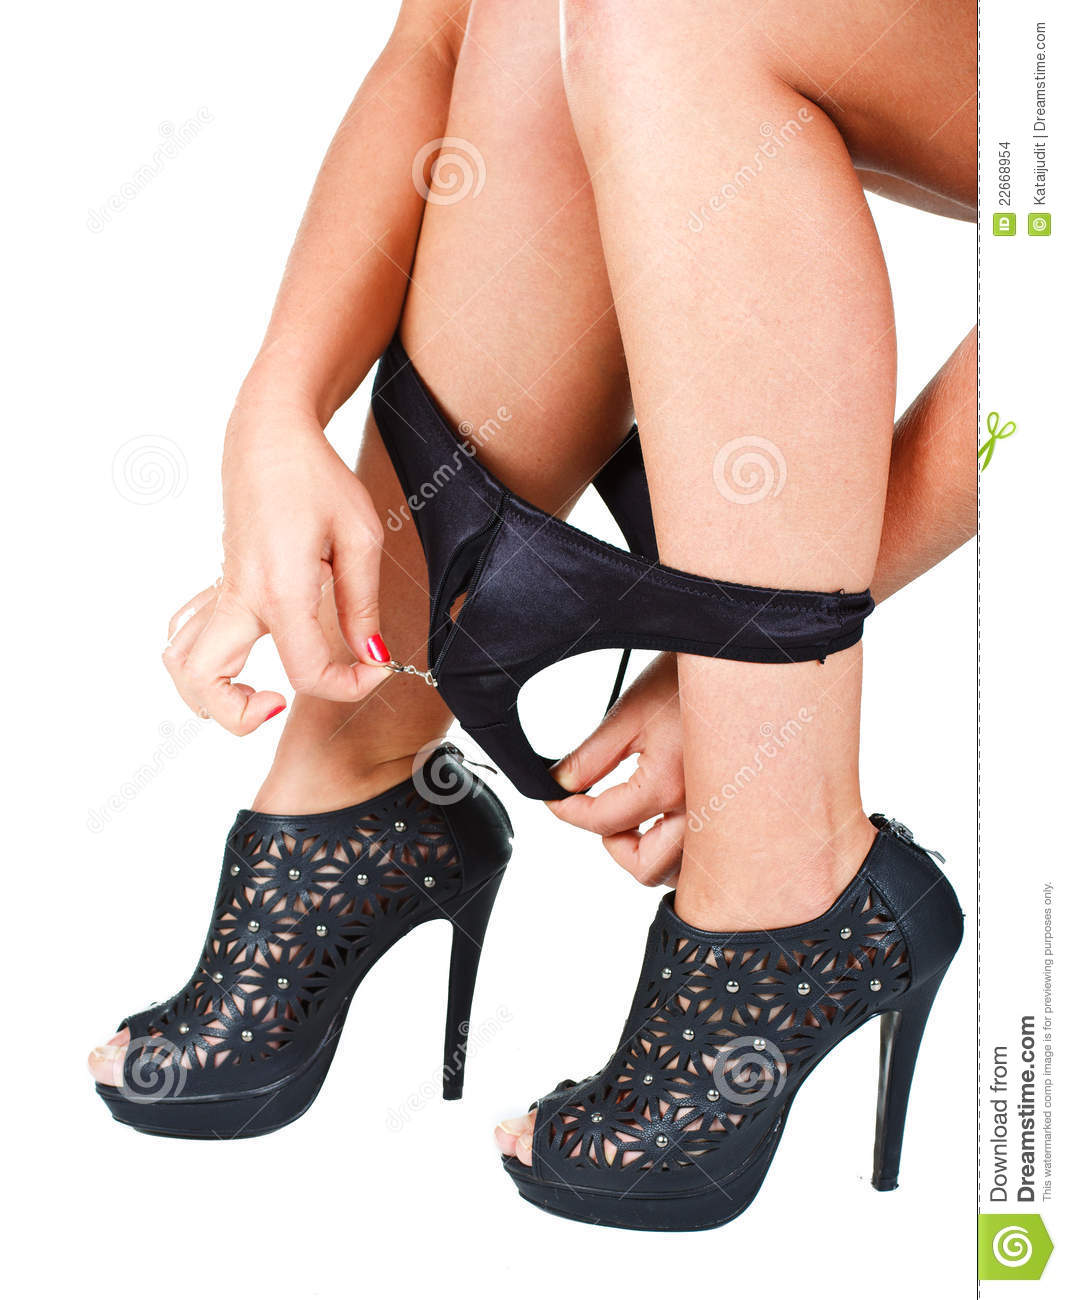 Are Black high heels with panties consider